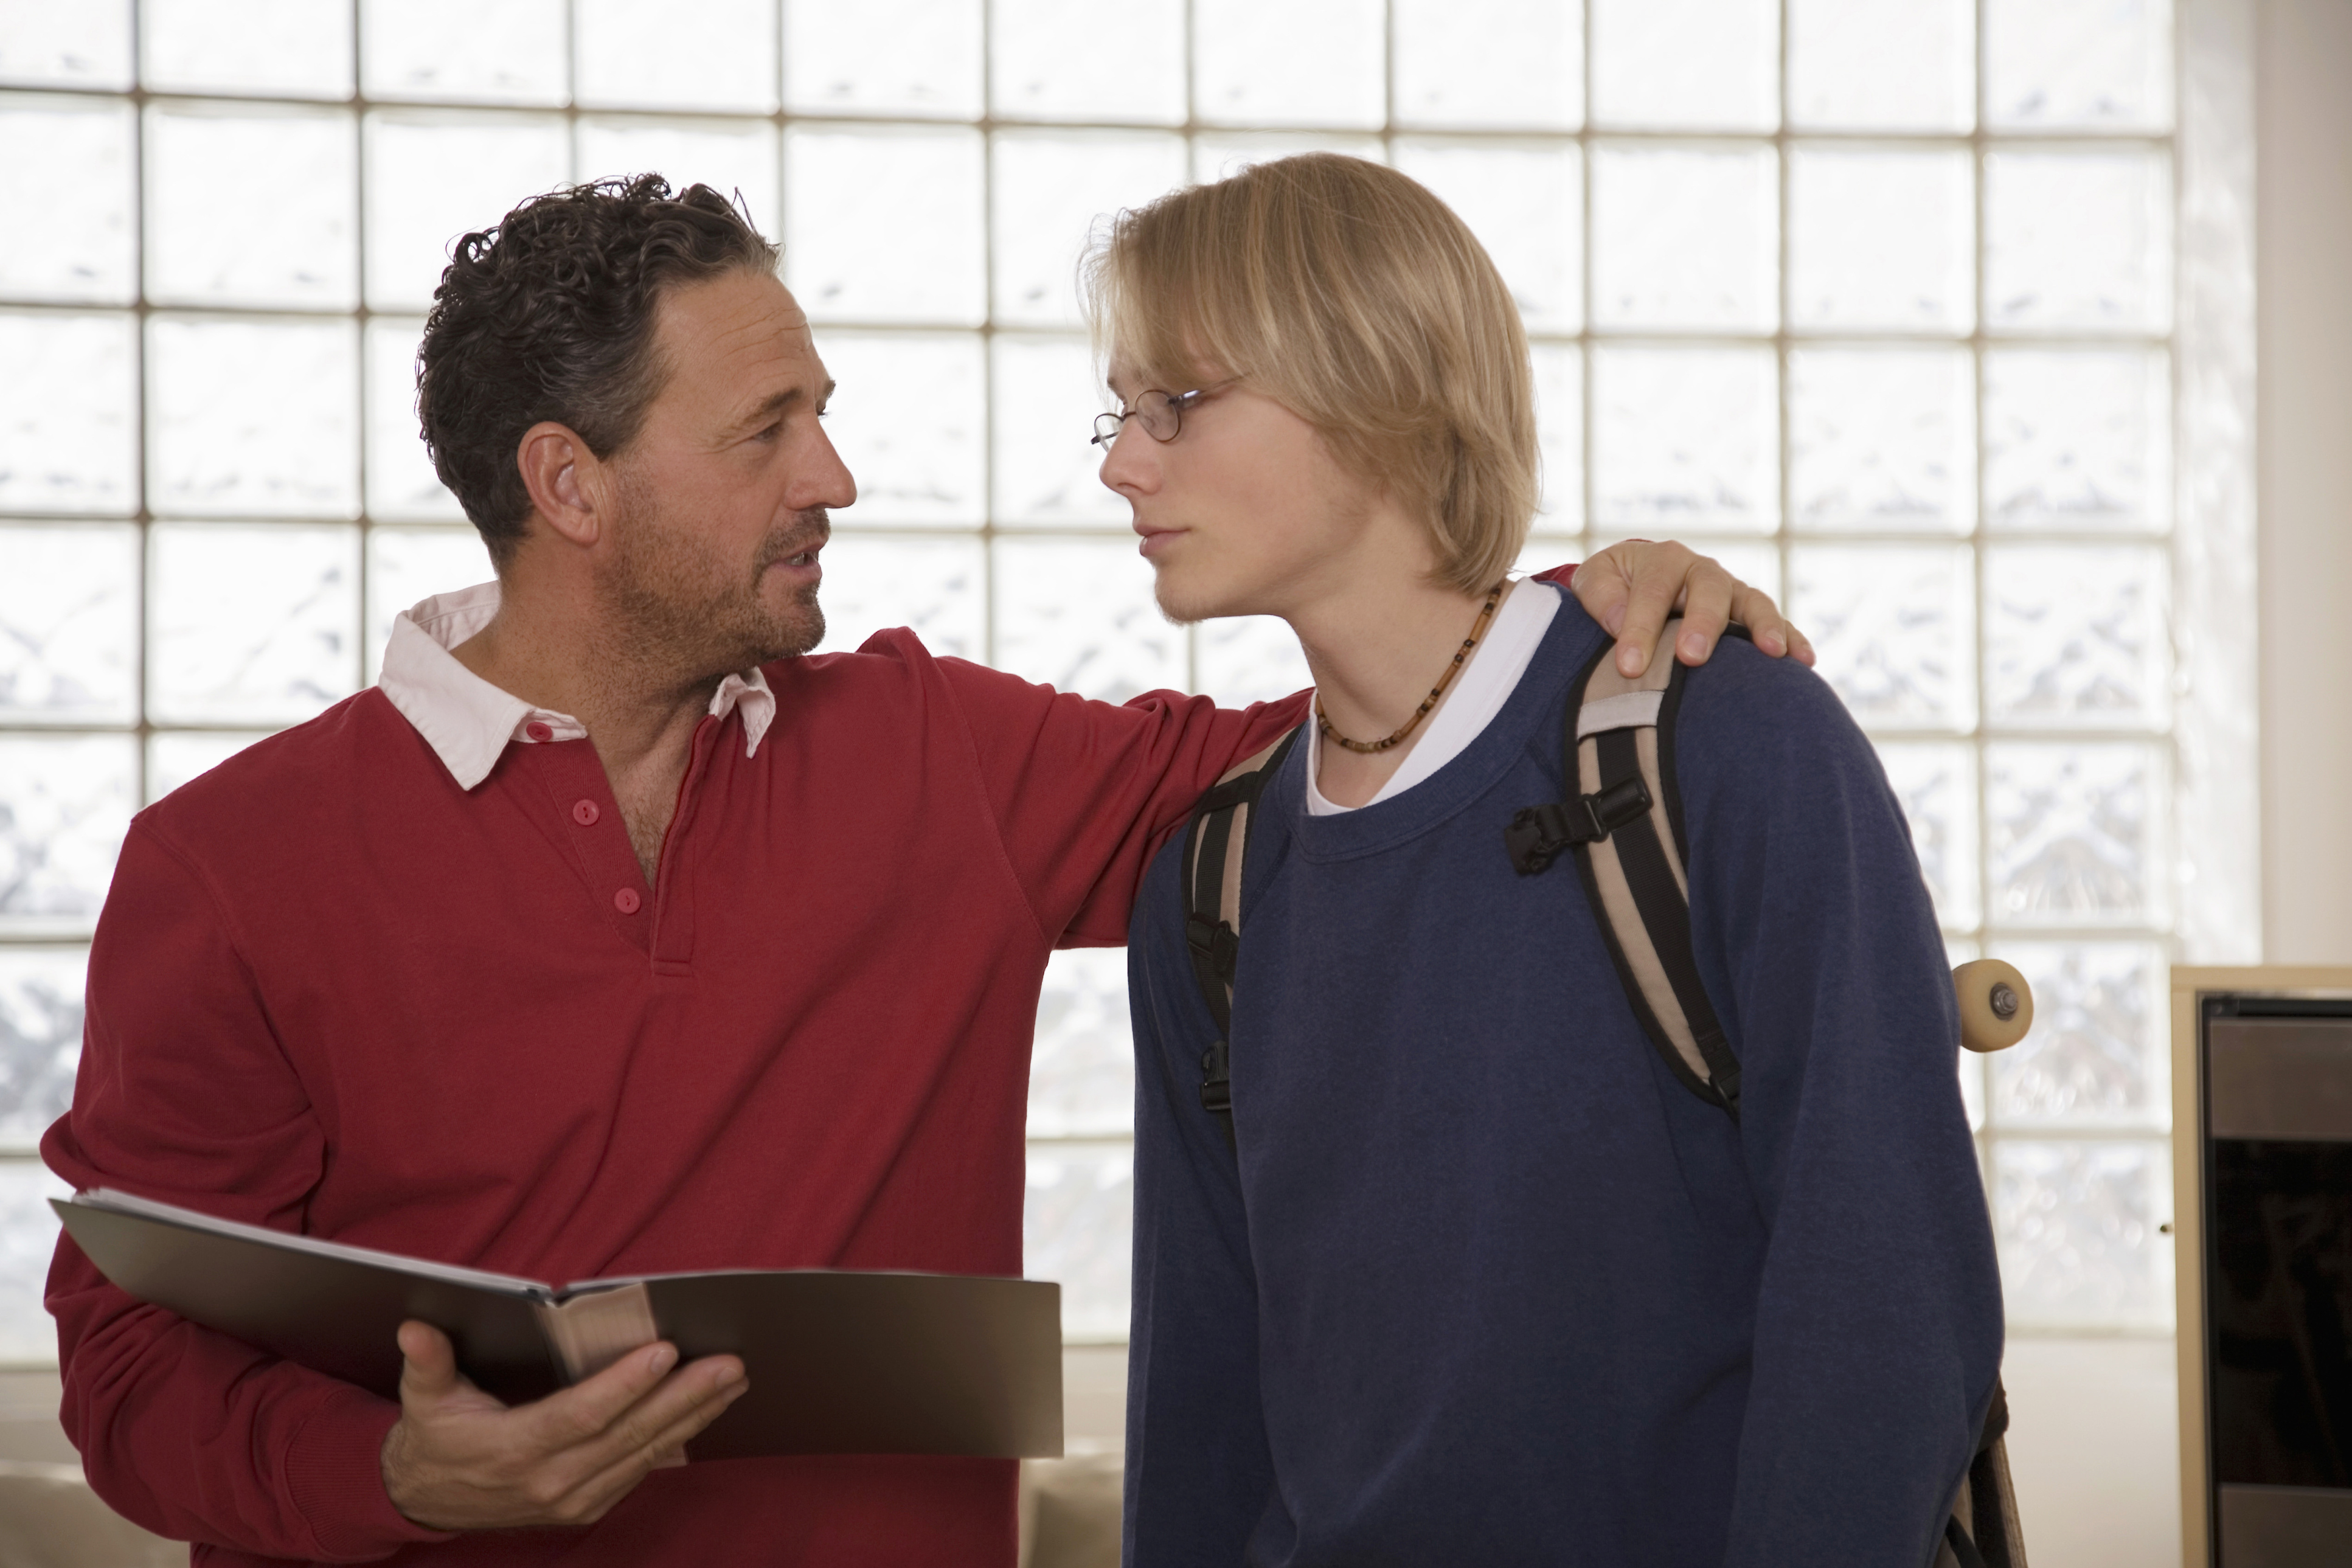 parents teens responsibility teach take notes don education academic tips usnews